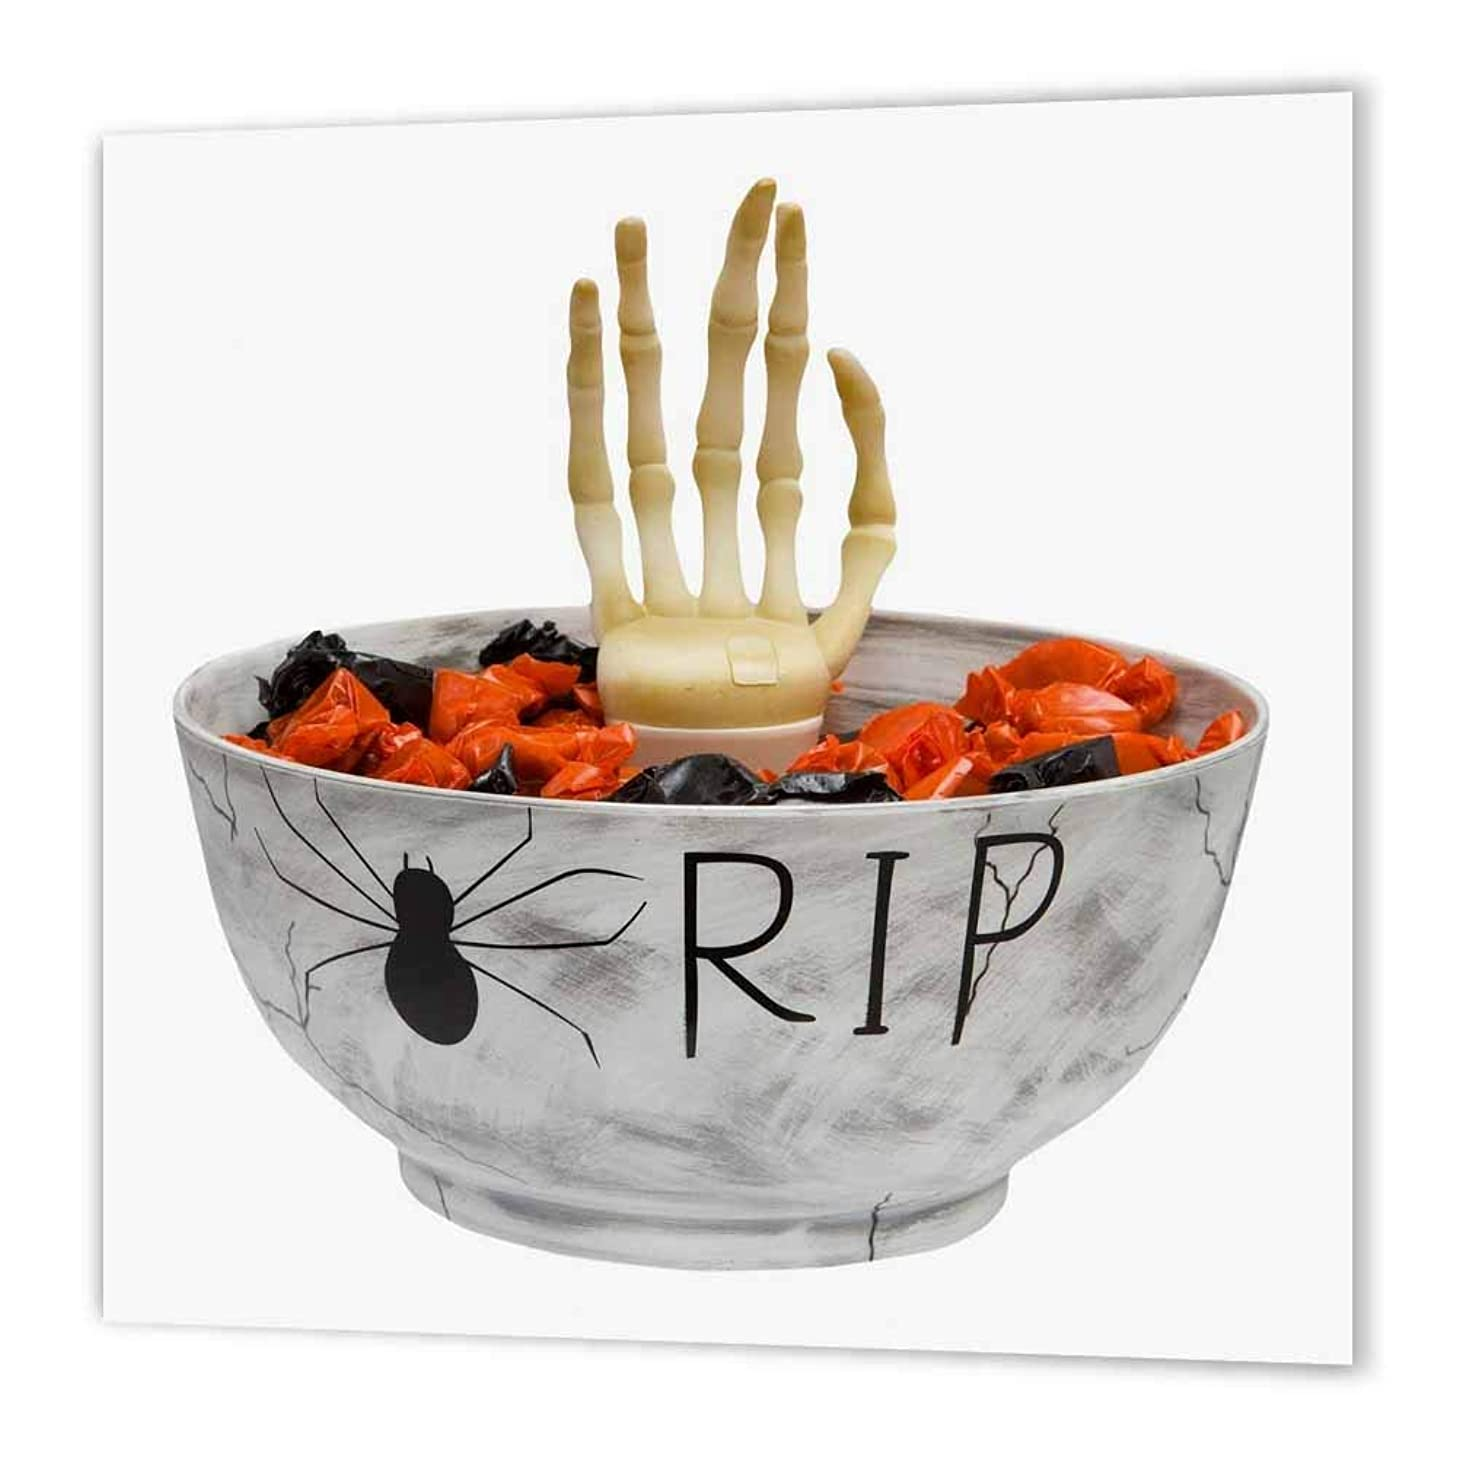 3dRose ht_131313_1 Halloween Rip Candy Bowl Iron on Heat Transfer for White Material, 8 by 8-Inch